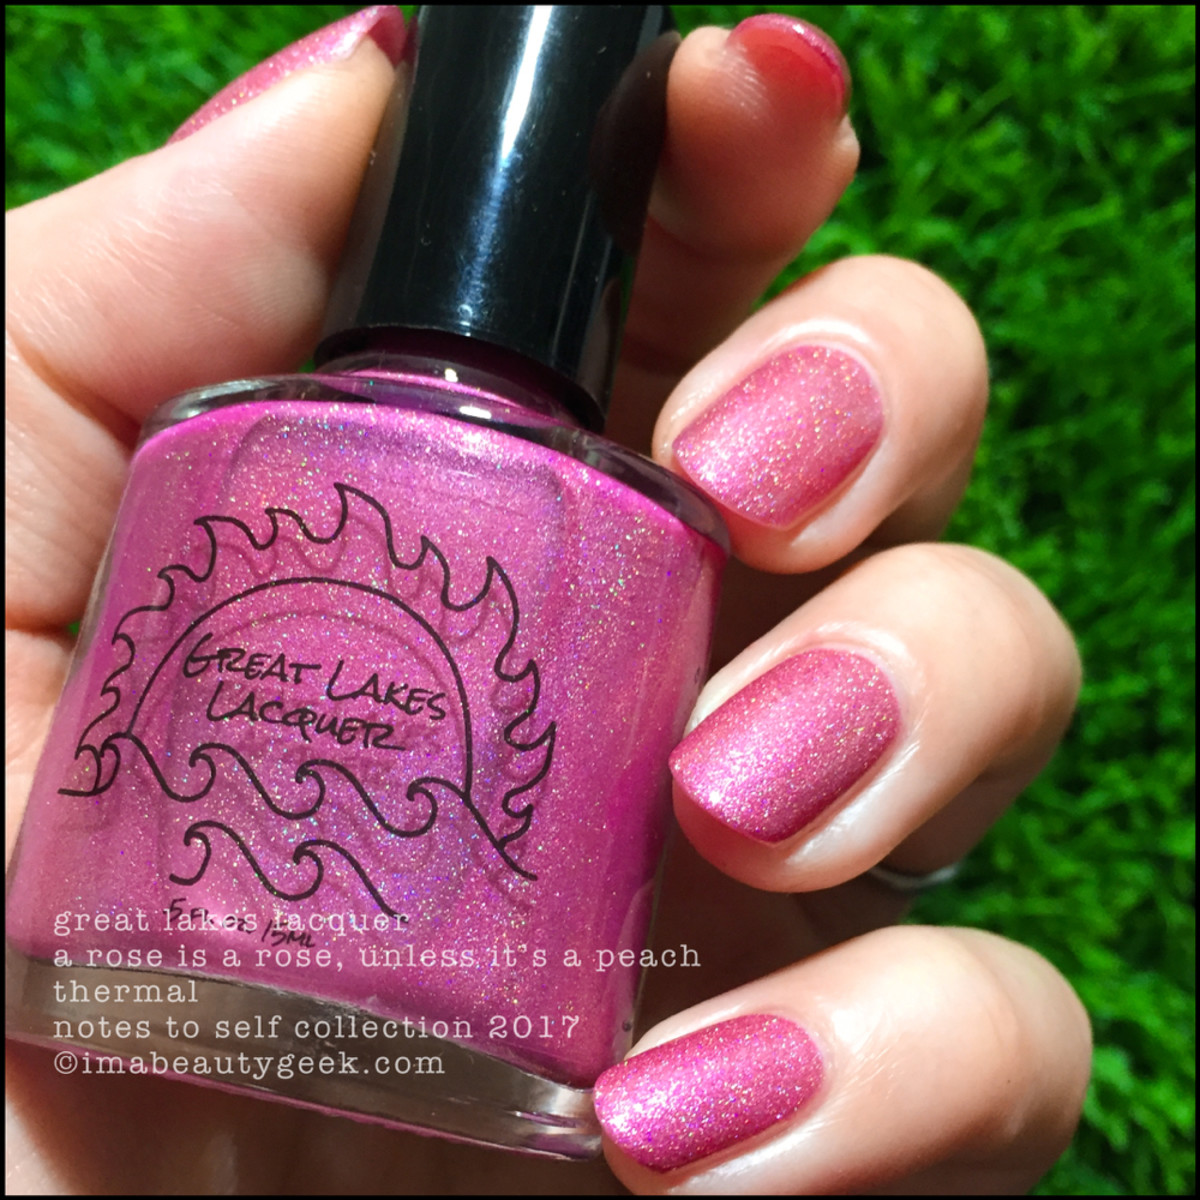 Great Lakes Lacquer A Rose is a Rose Unless It's a Peach 3 _ Great Lakes Lacquer Notes to Self Thermal Collection 2017